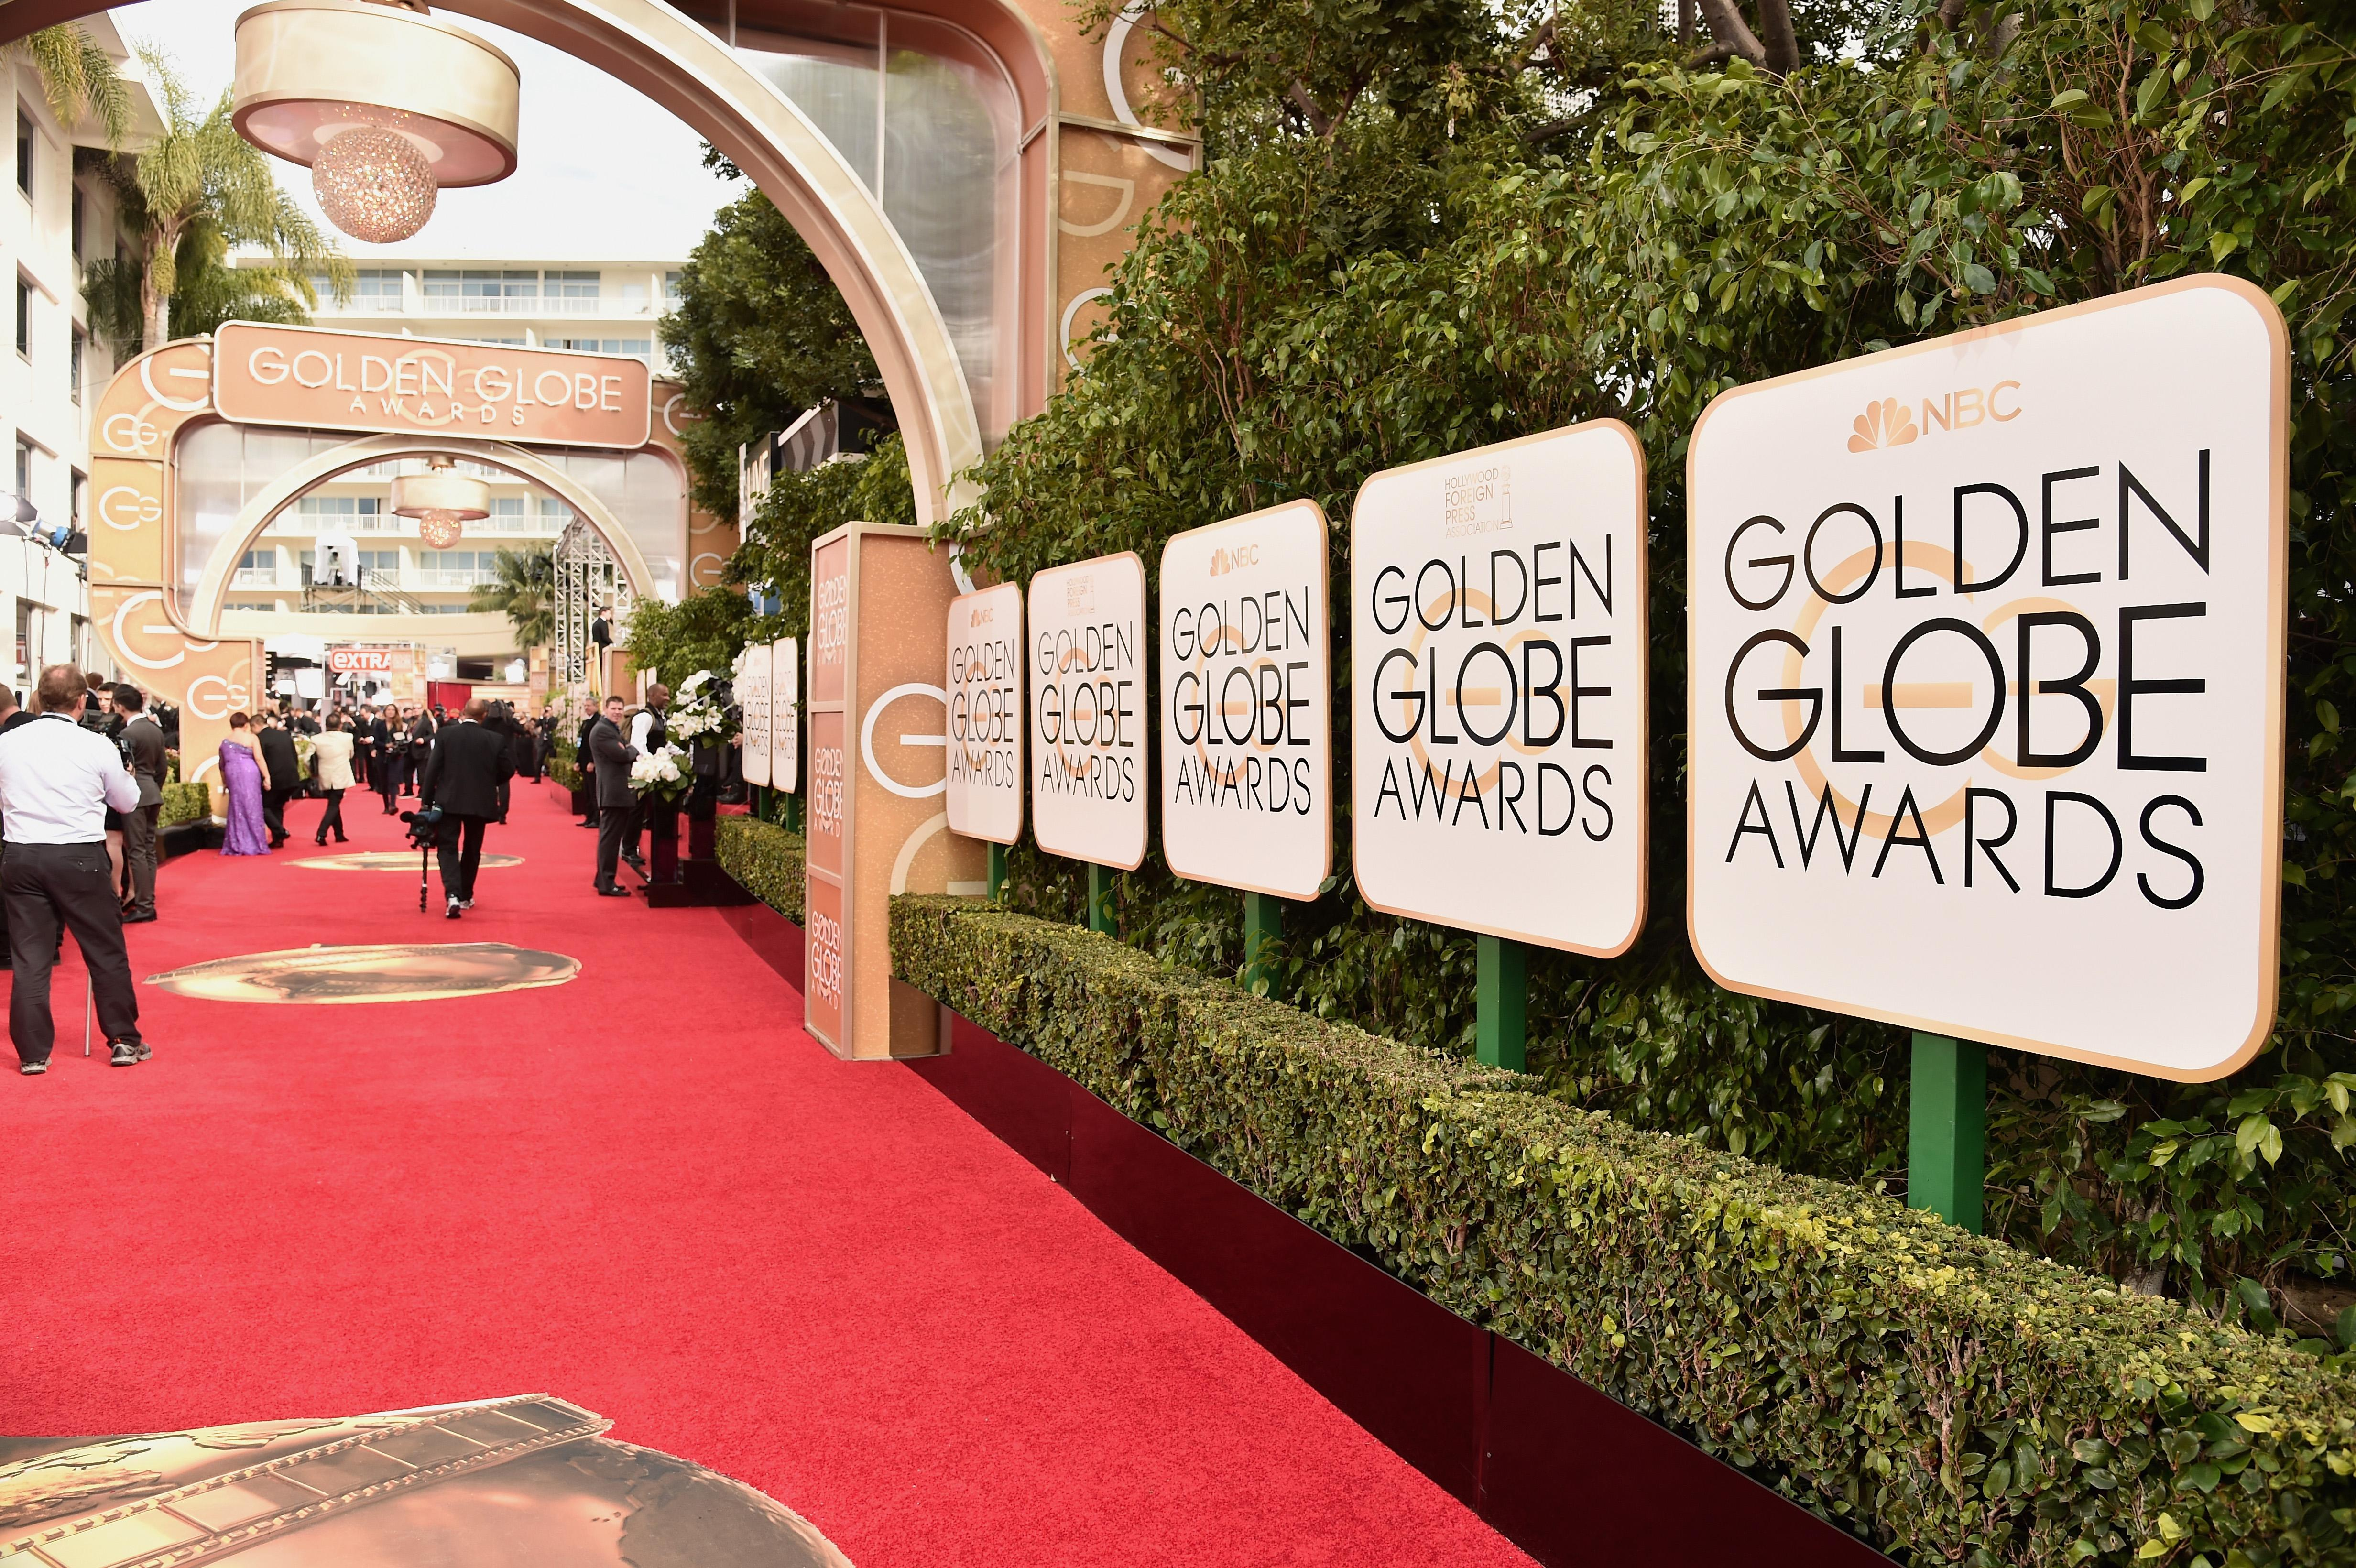 Golden Globes: Women to wear black to protest harassment [Video]